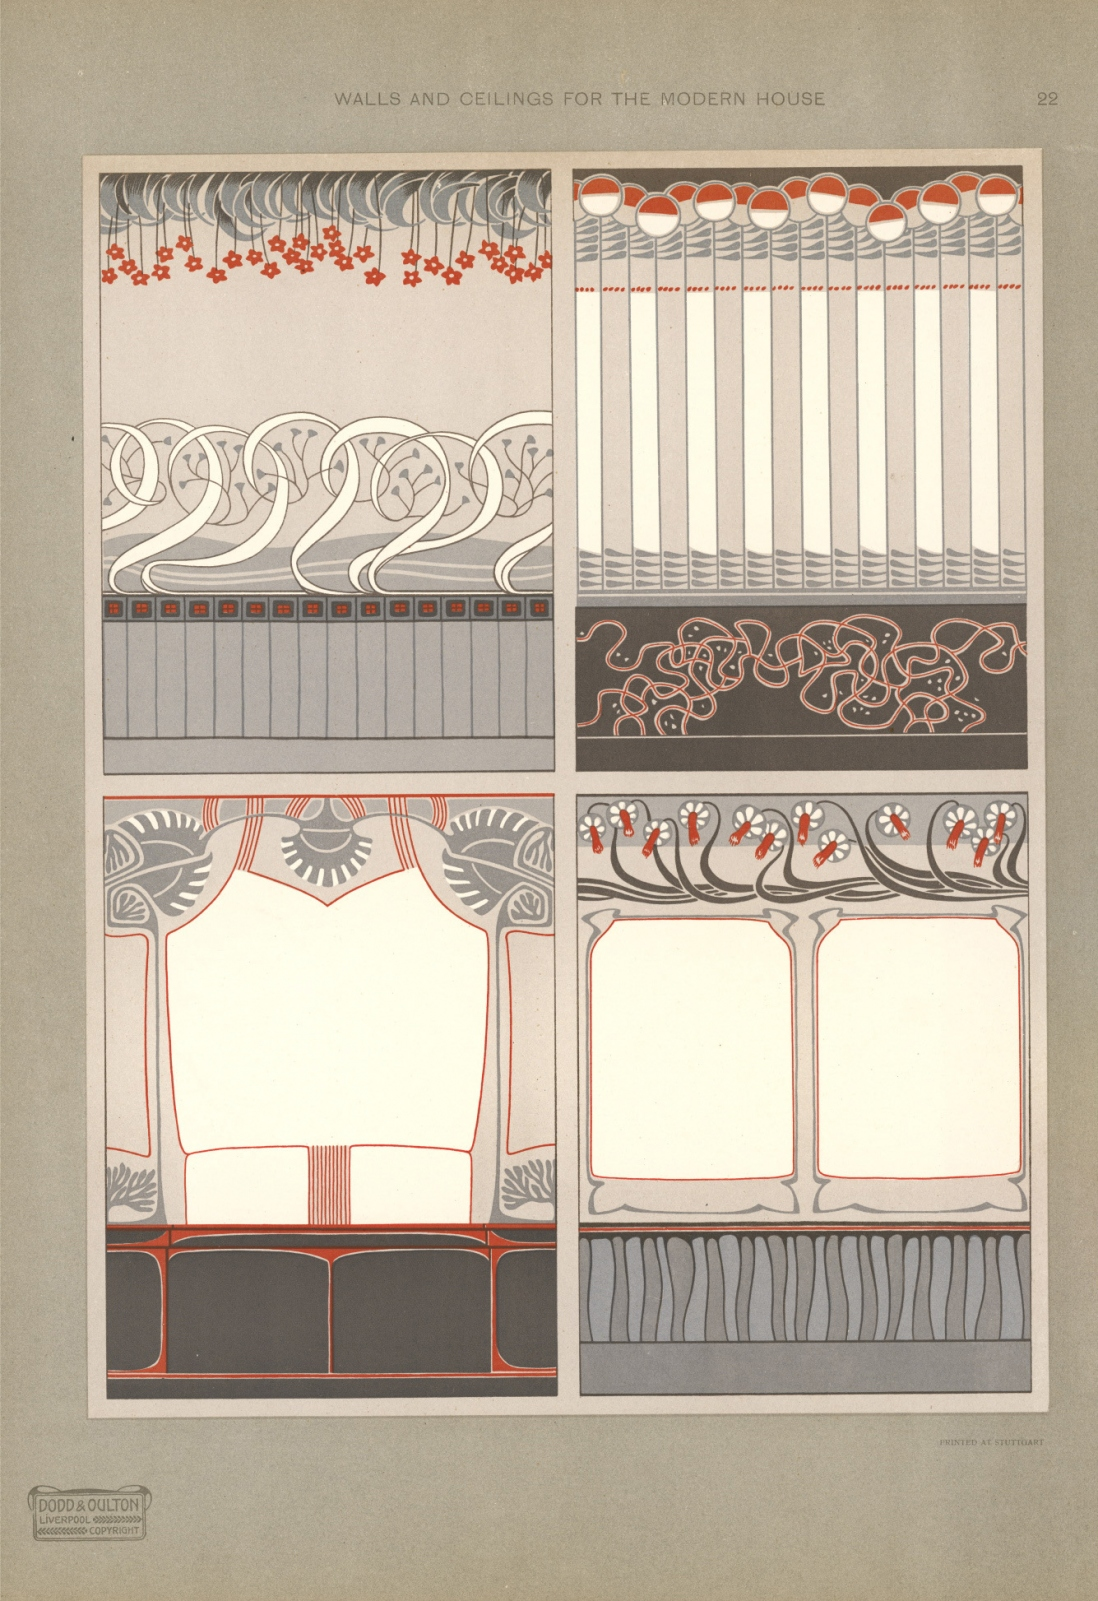 1907 English Art Nouveau Wall and ceiling designs